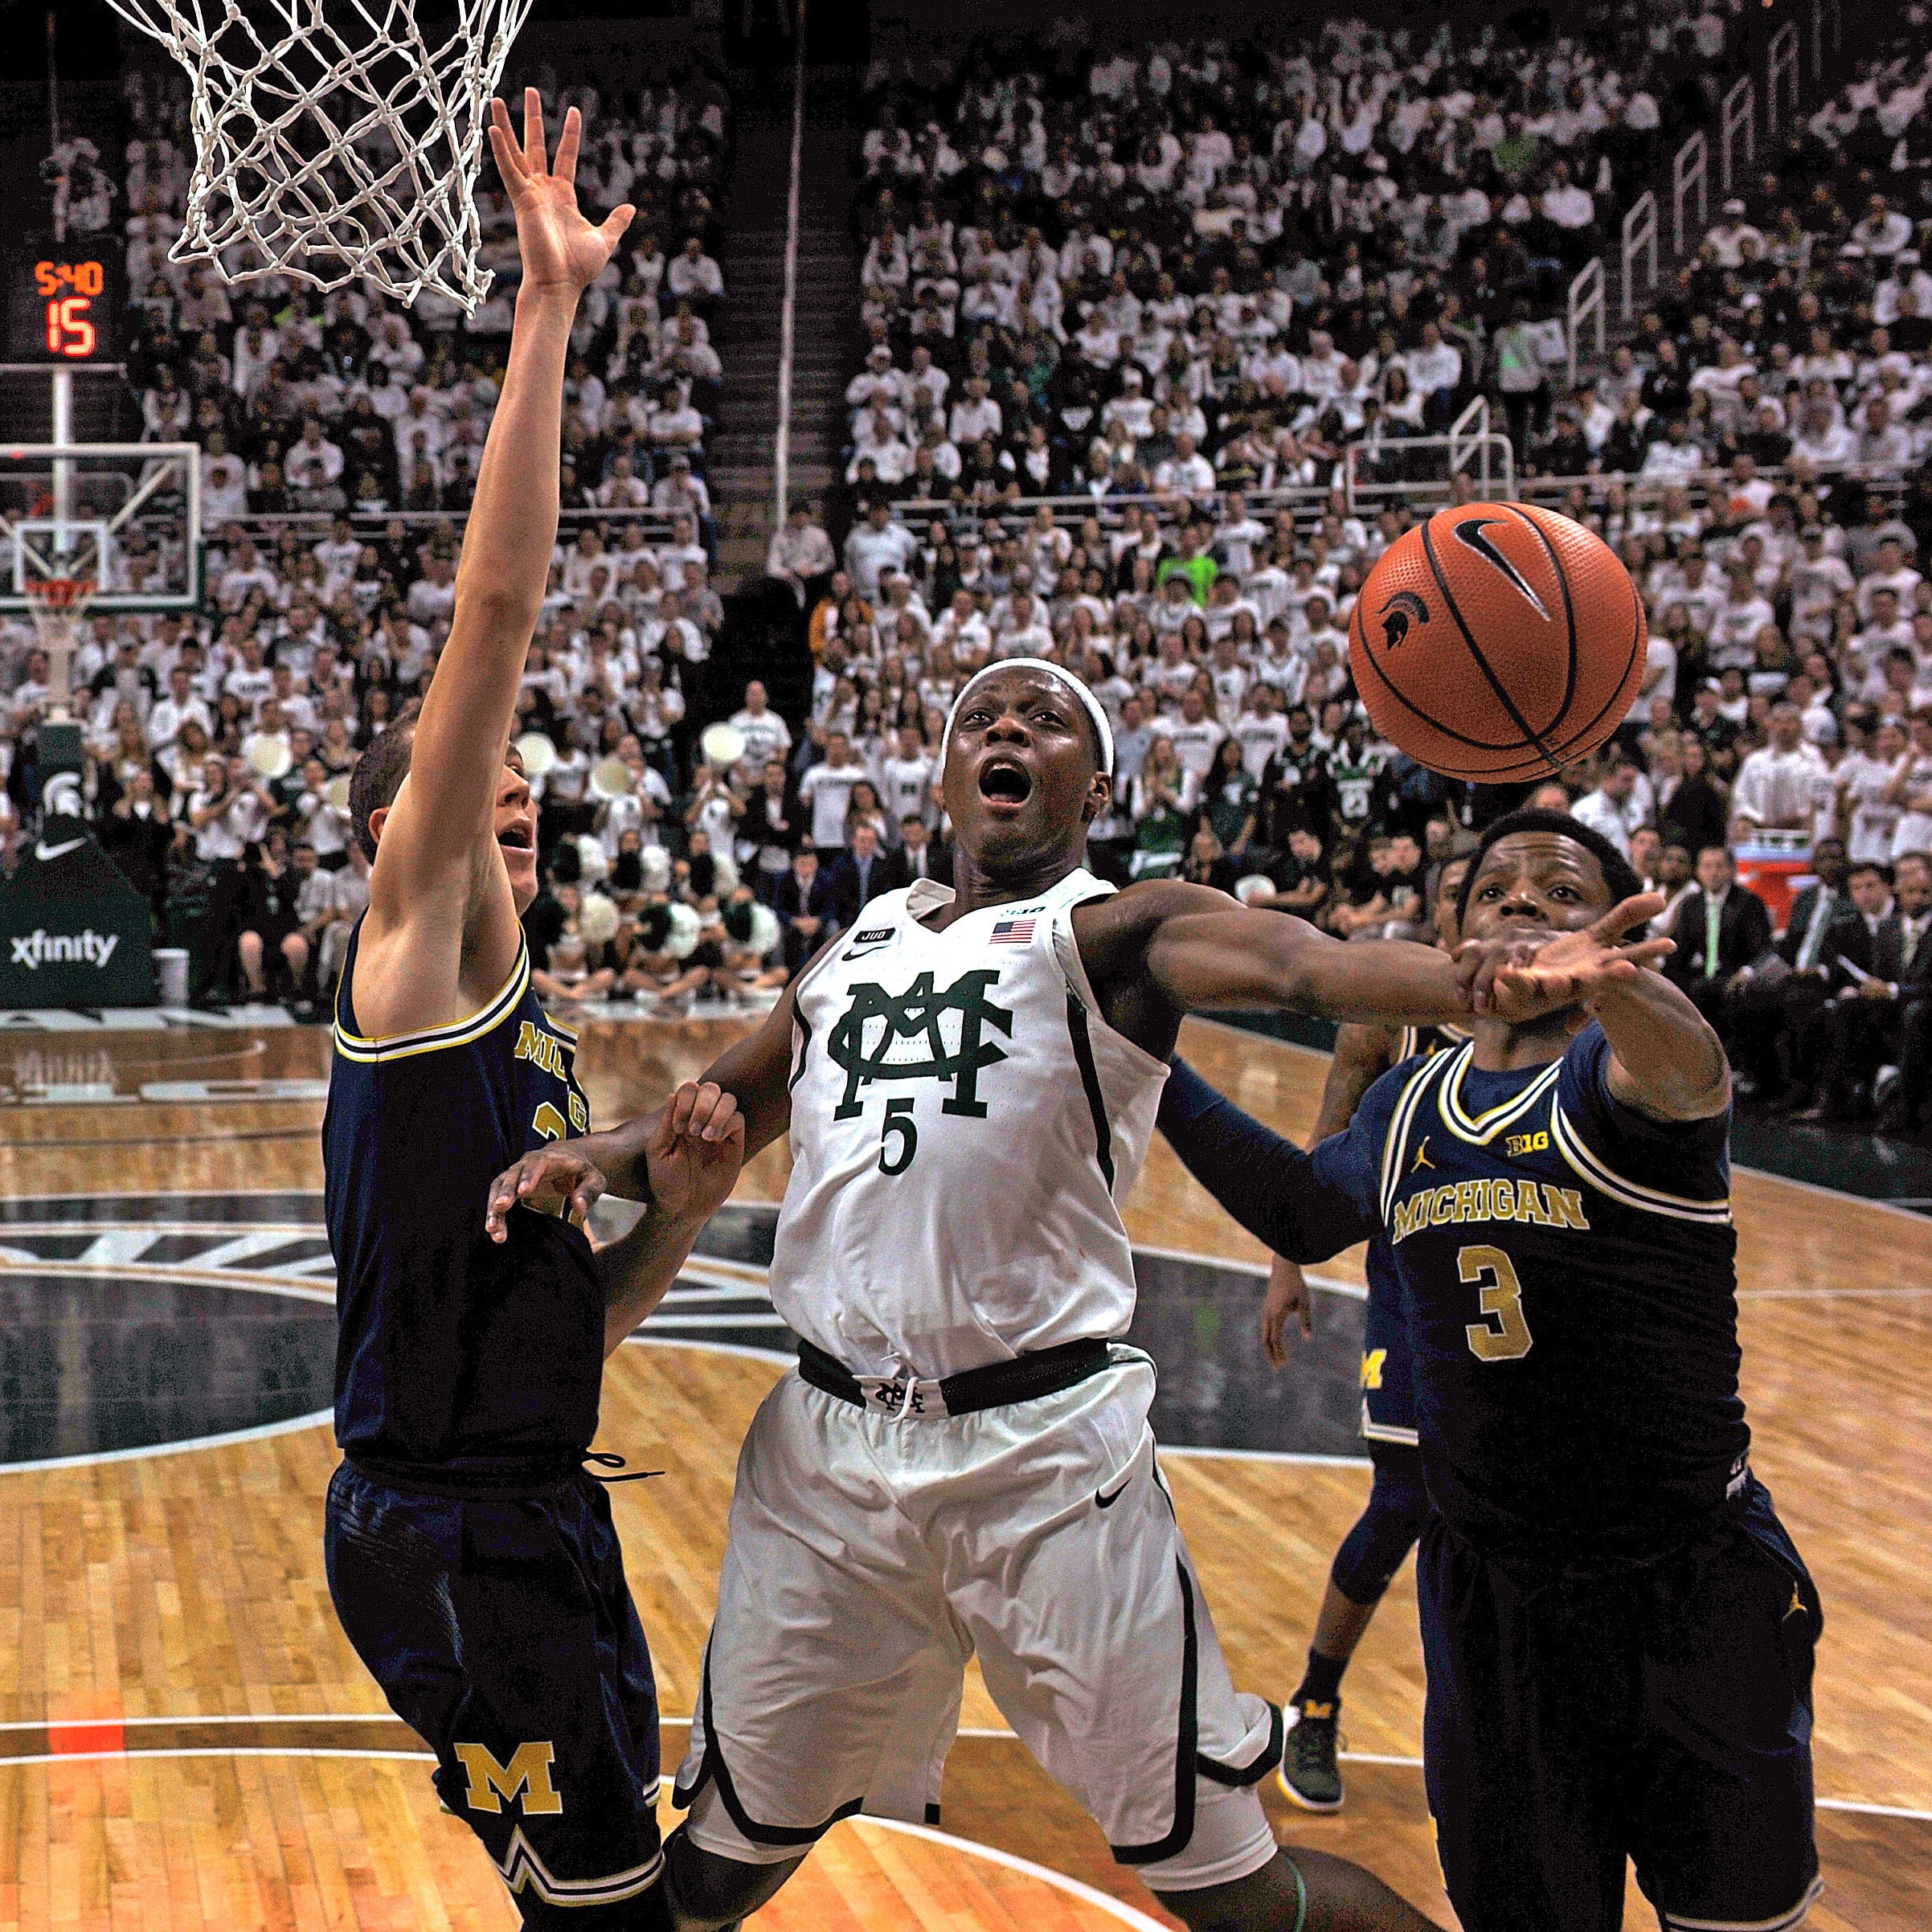 The matchup between Michigan State guard Cassius...